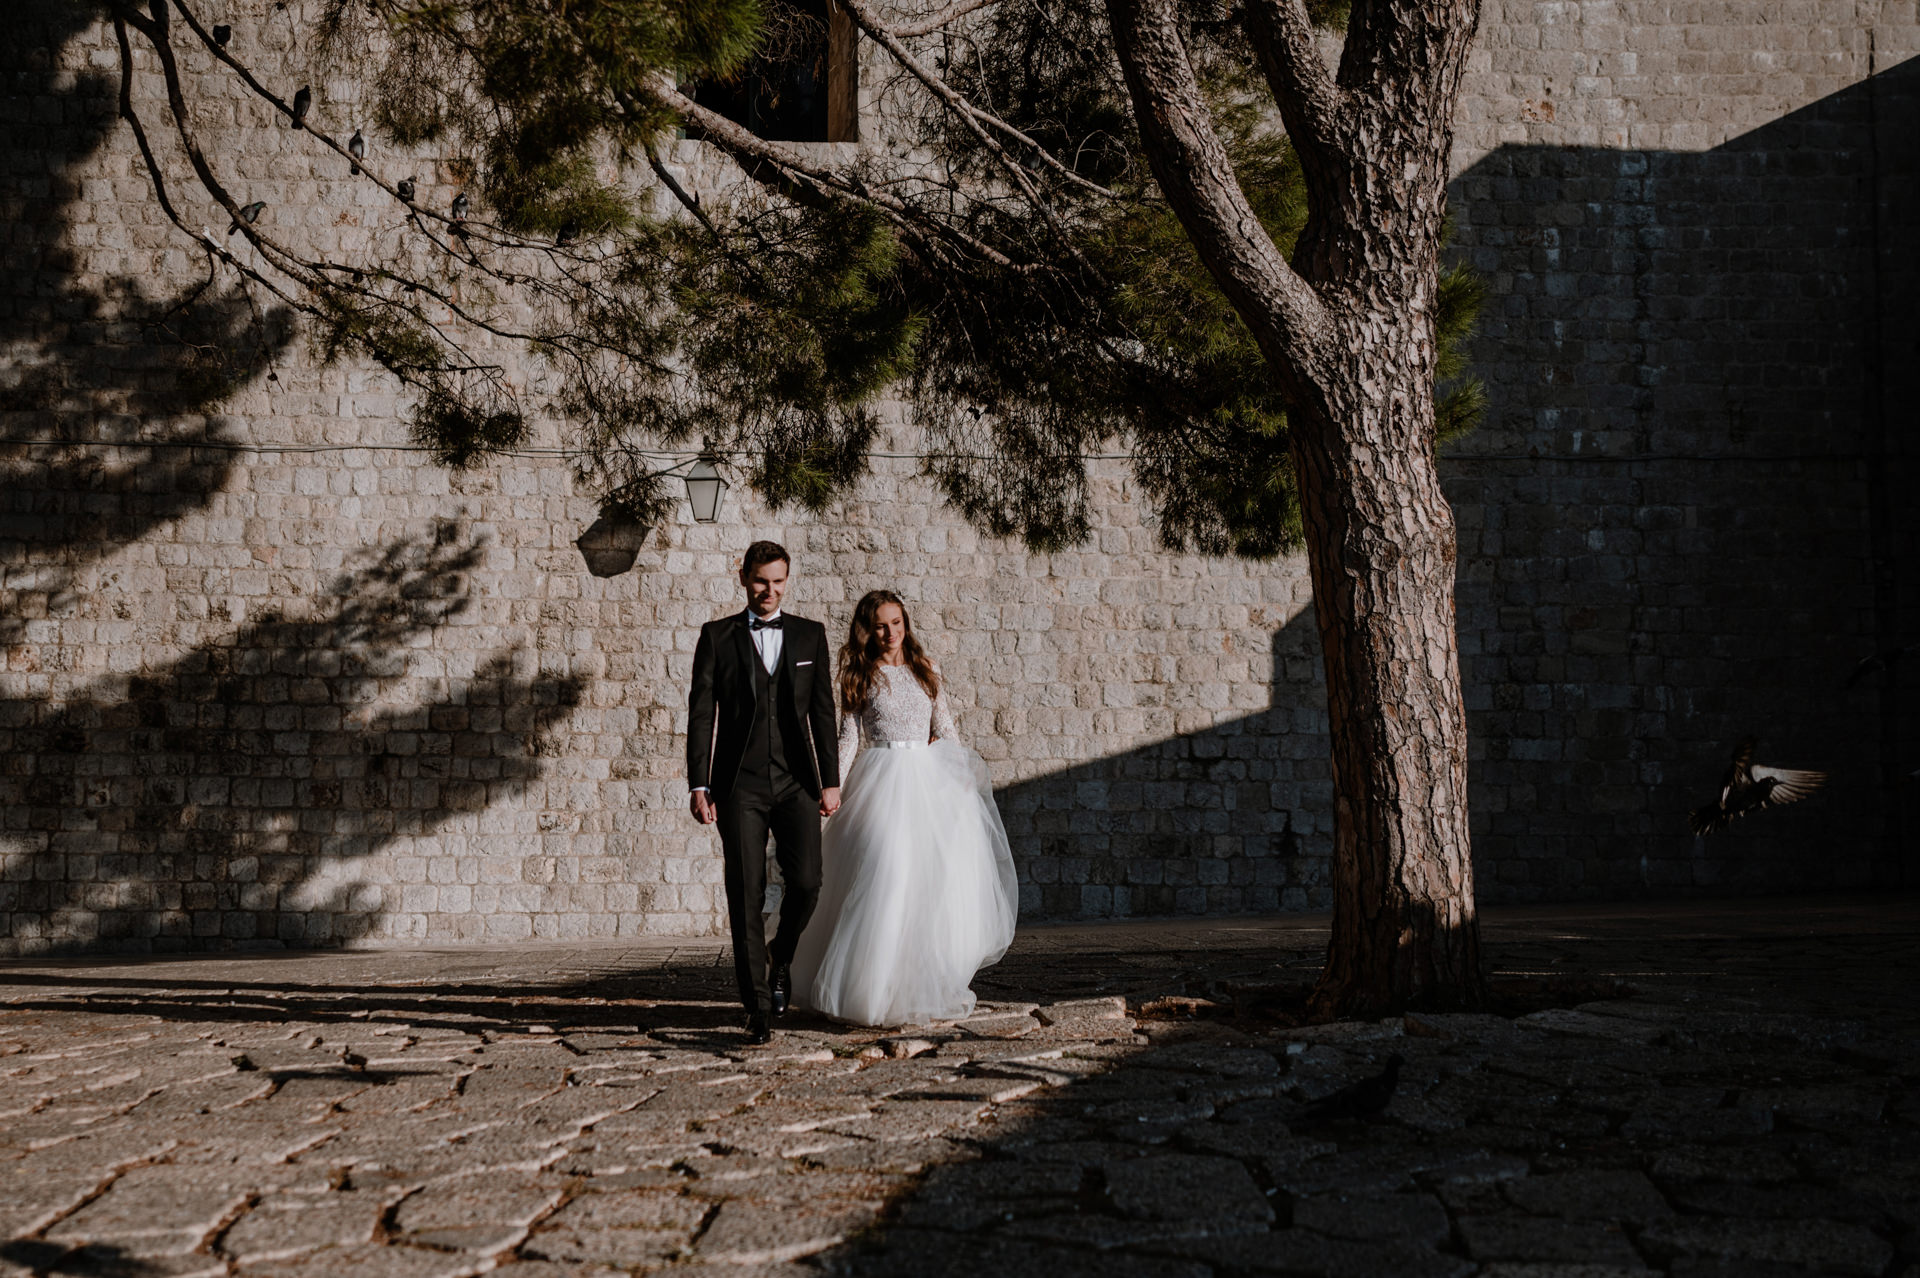 bride and groom together walking and smiling in dubrovnik